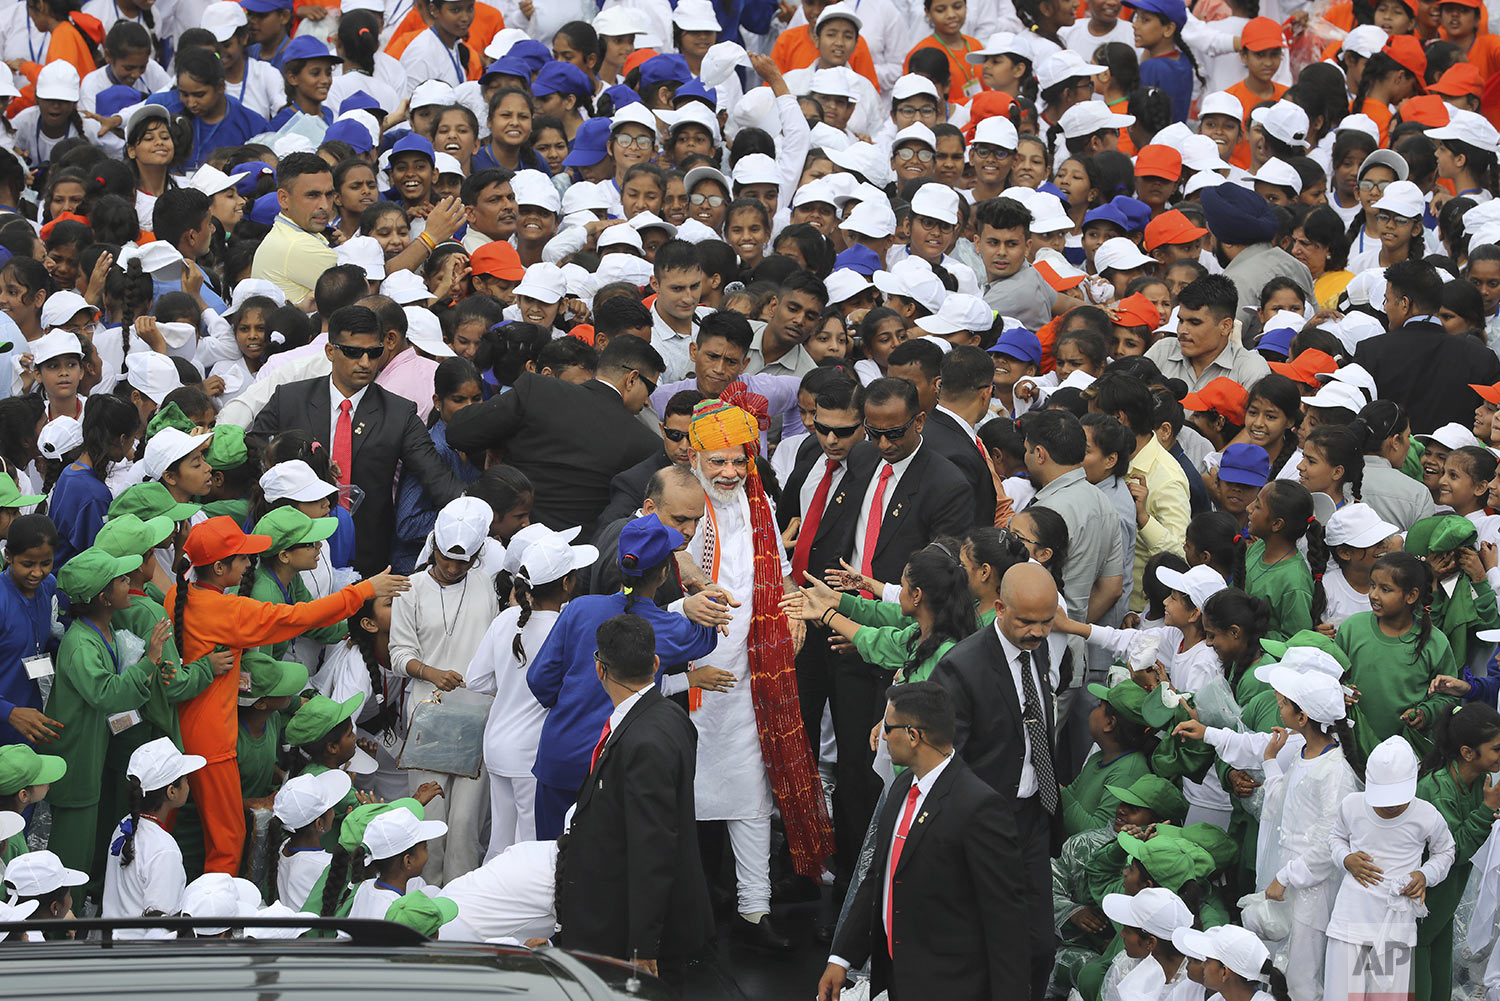 Indian Prime Minister Narendra Modi, center, greets school children after addressing the nation on the country's Independence Day from the ramparts of Mughal-era Red Fort, in New Delhi, India, Thursday, Aug. 15, 2019. (AP Photo/Manish Swarup)